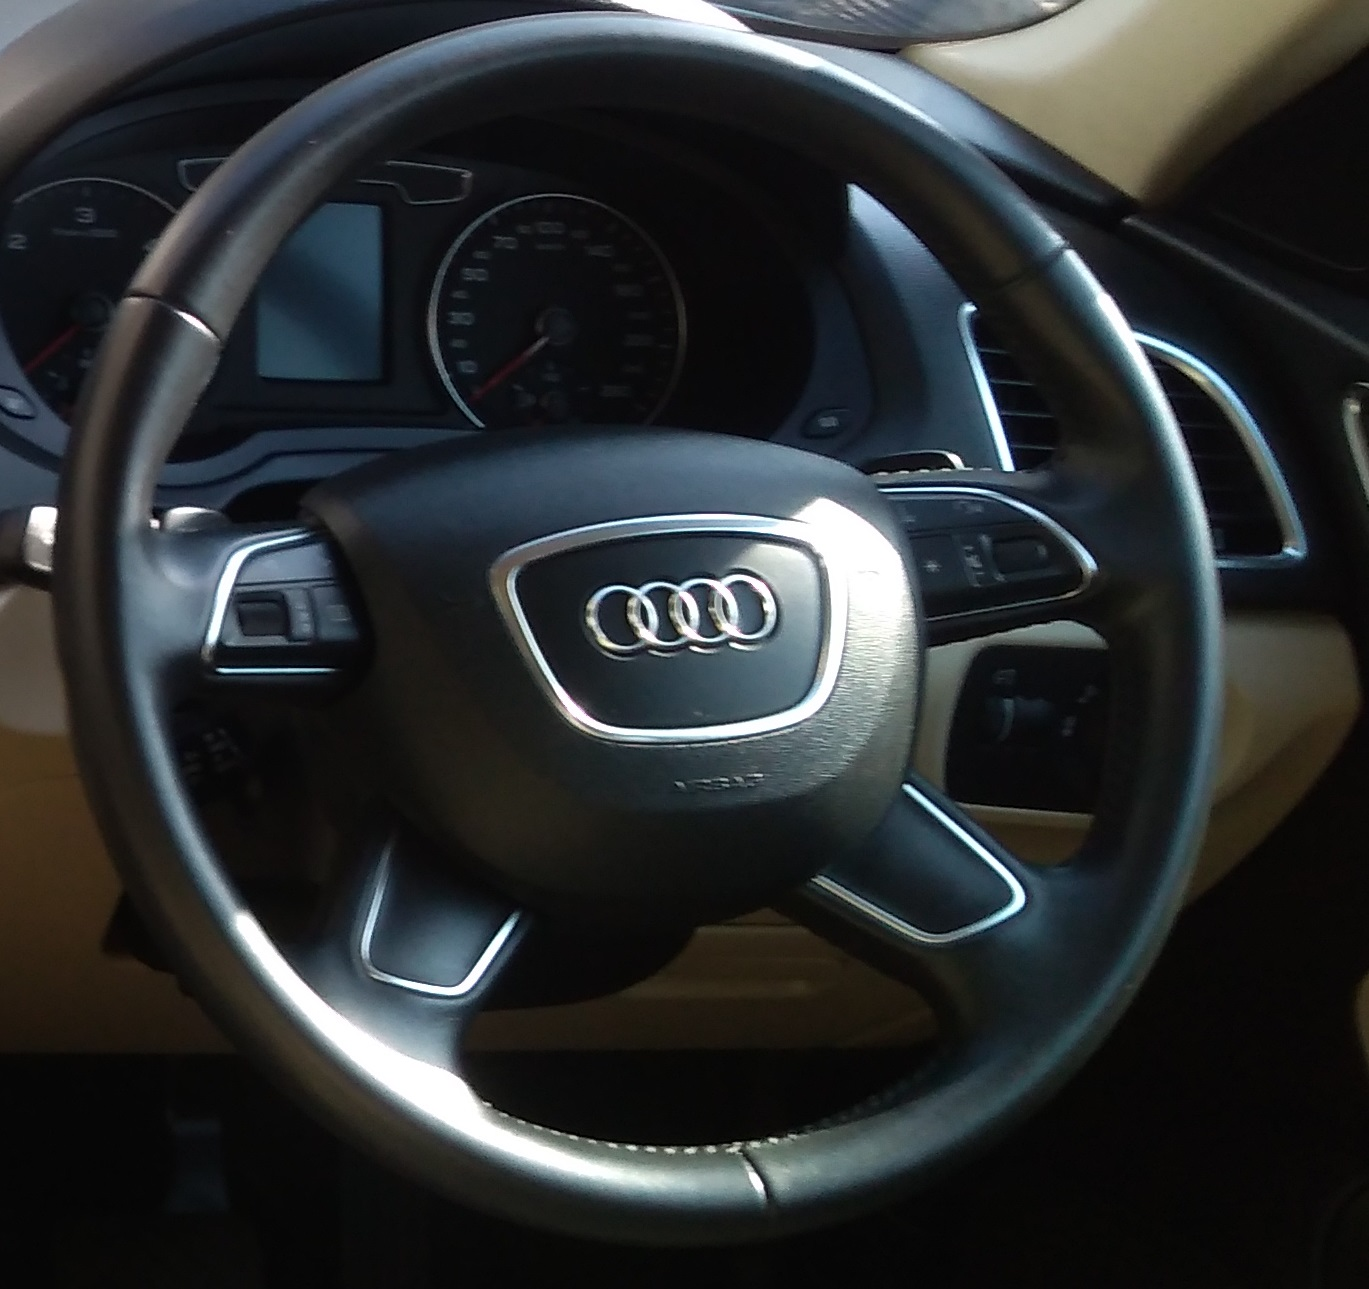 Audi Q3 2.0 Tdi Technology